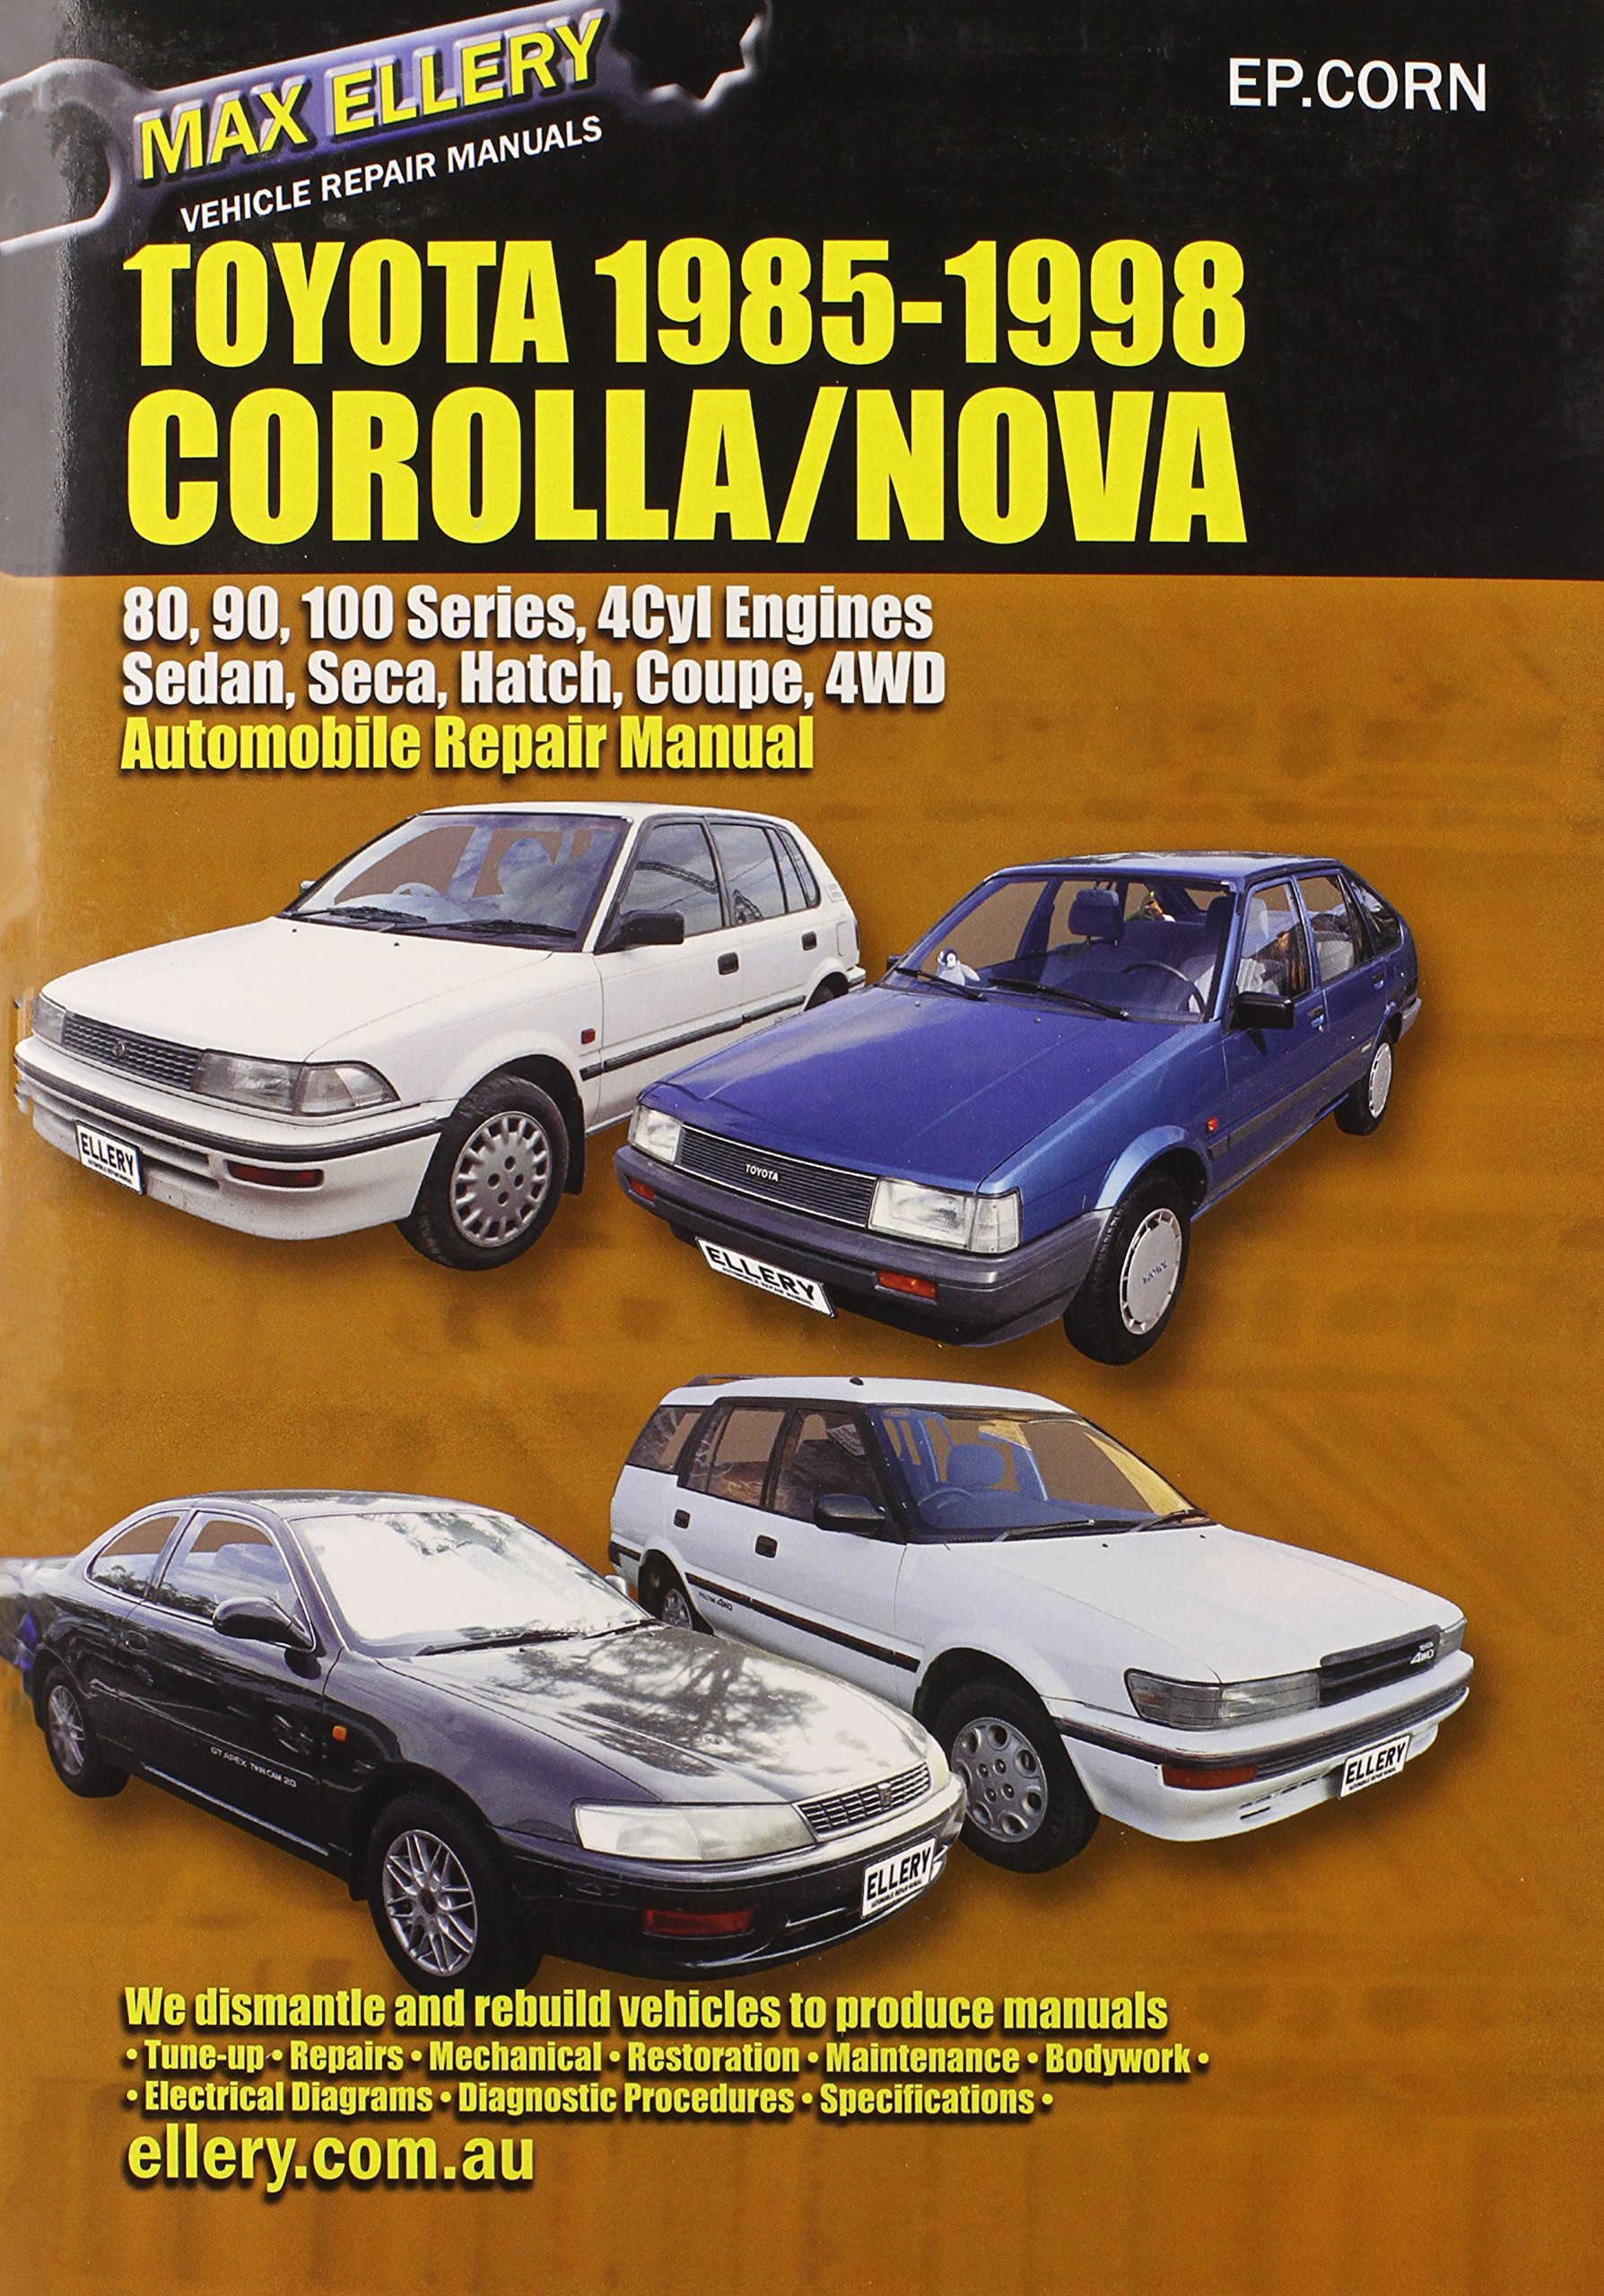 Toyota Corolla/Nova 1985-98 Auto Repair Manual-Sedan, Seca, Hatch, all  Engines inc 16 Val TOHC: Max Ellery: 9780646120805: Amazon.com: Books